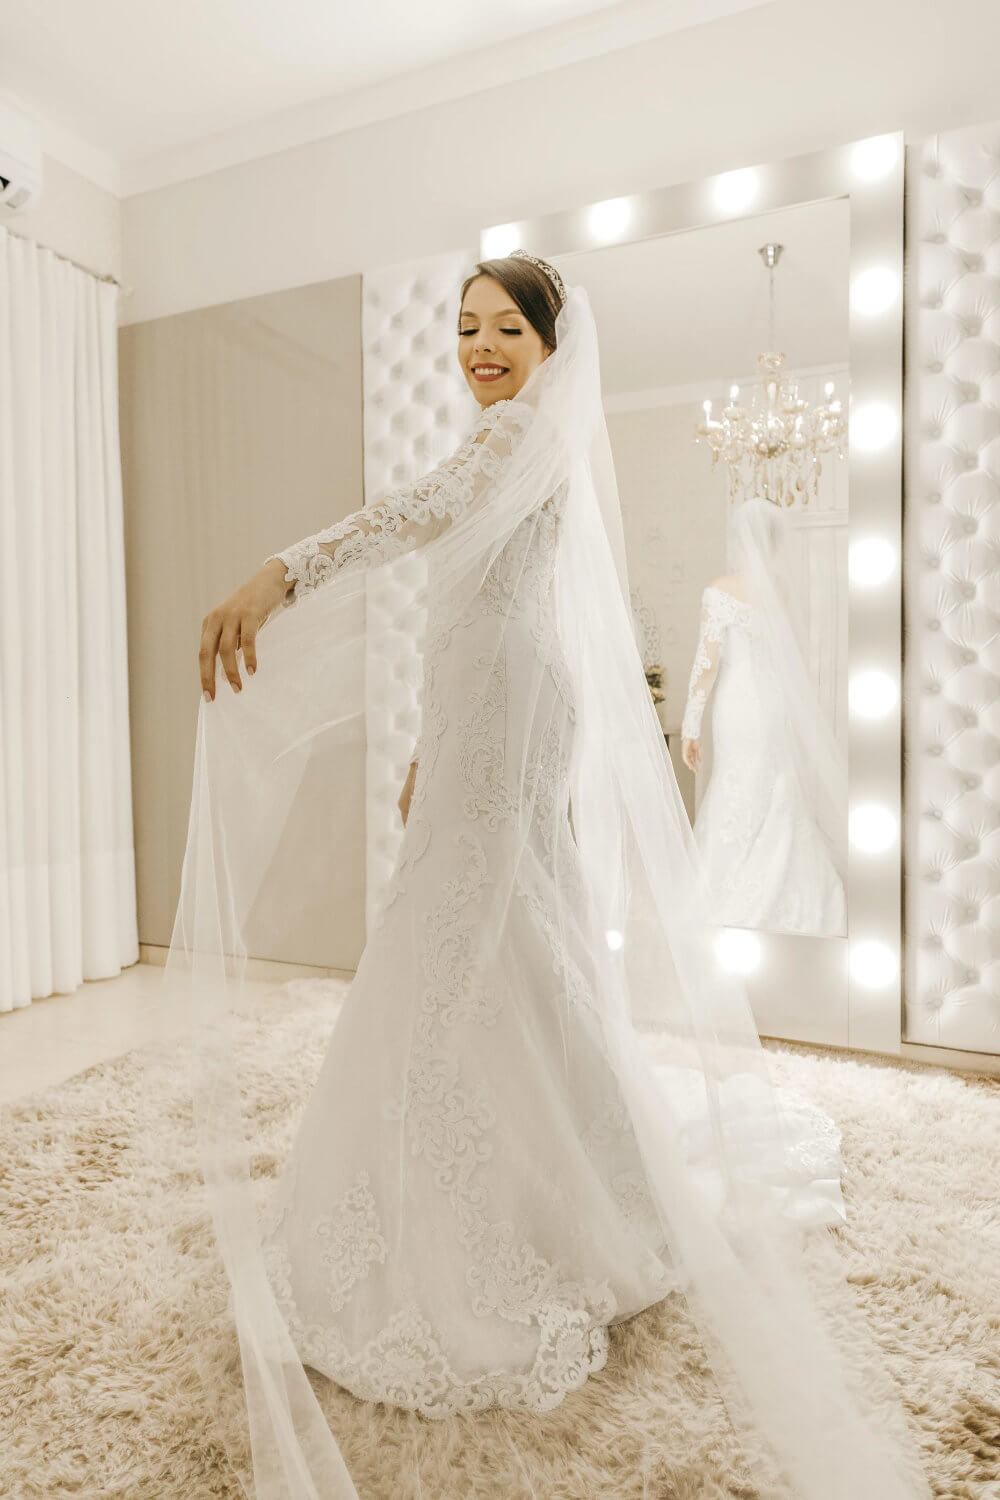 Essentials for Your Bridal Fitting Best Wedding Planning Tips Warrior Rose Events 4